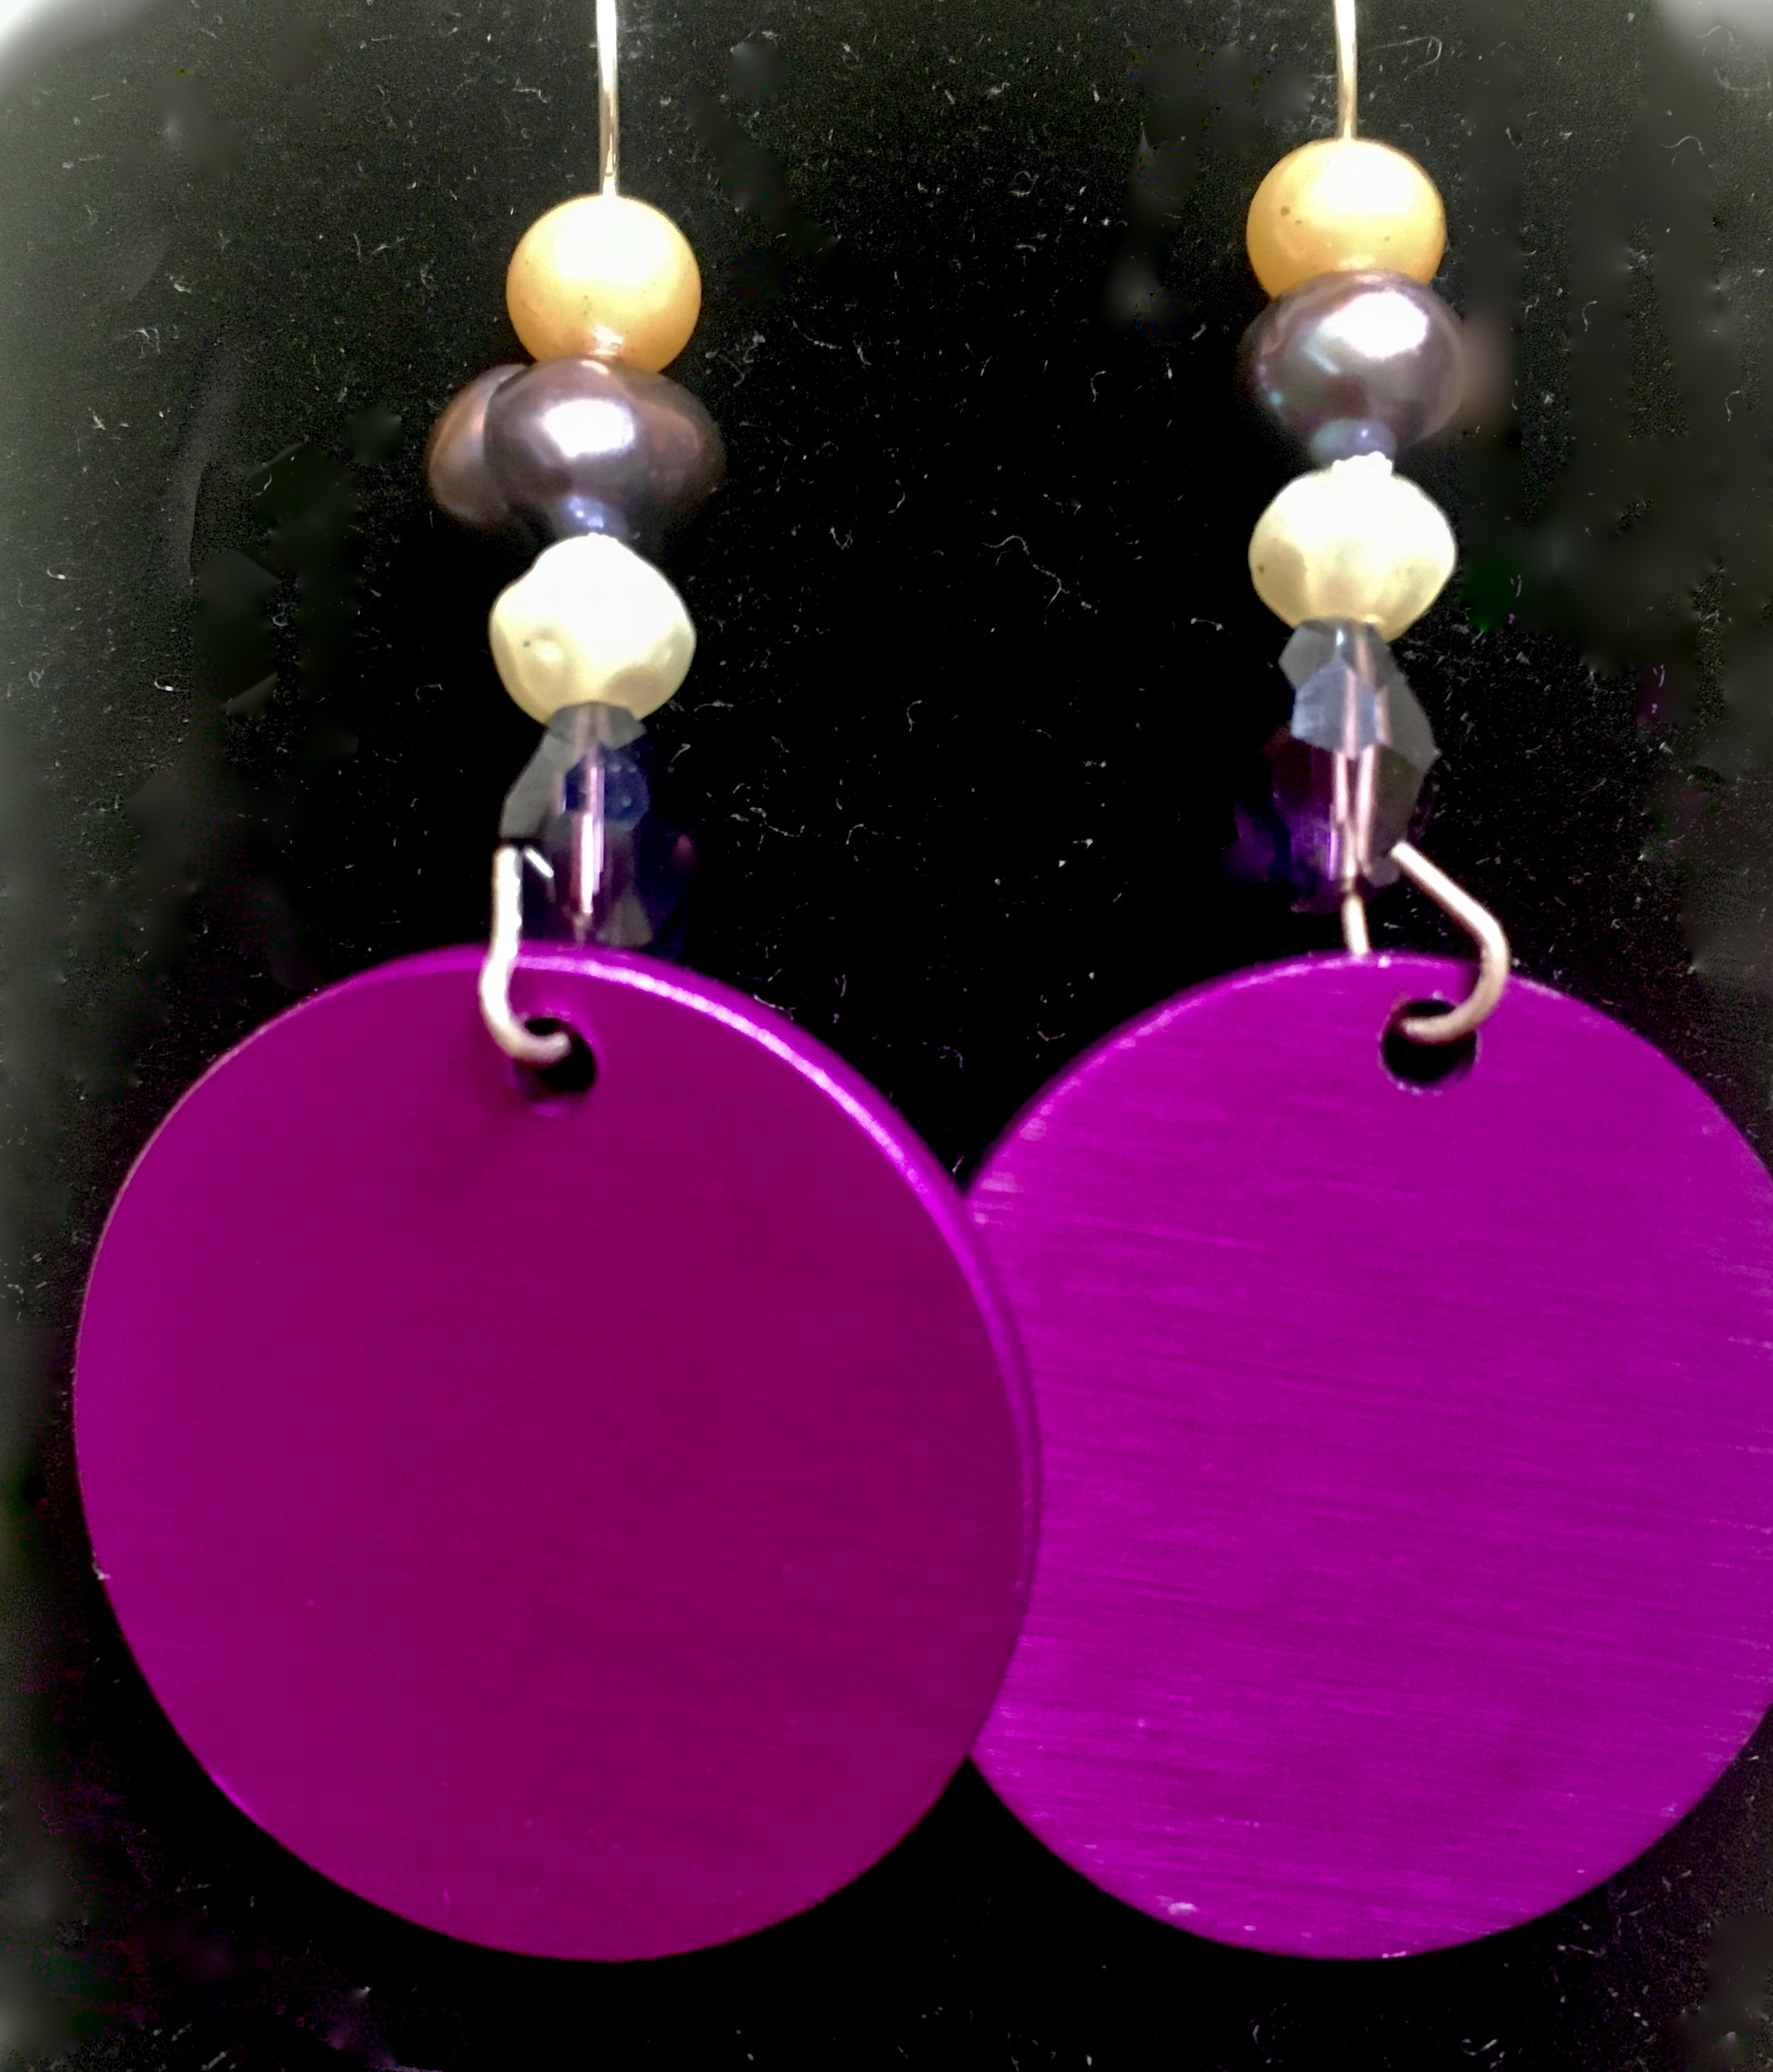 Energy Disk Earrings #2 Pearls, etc.